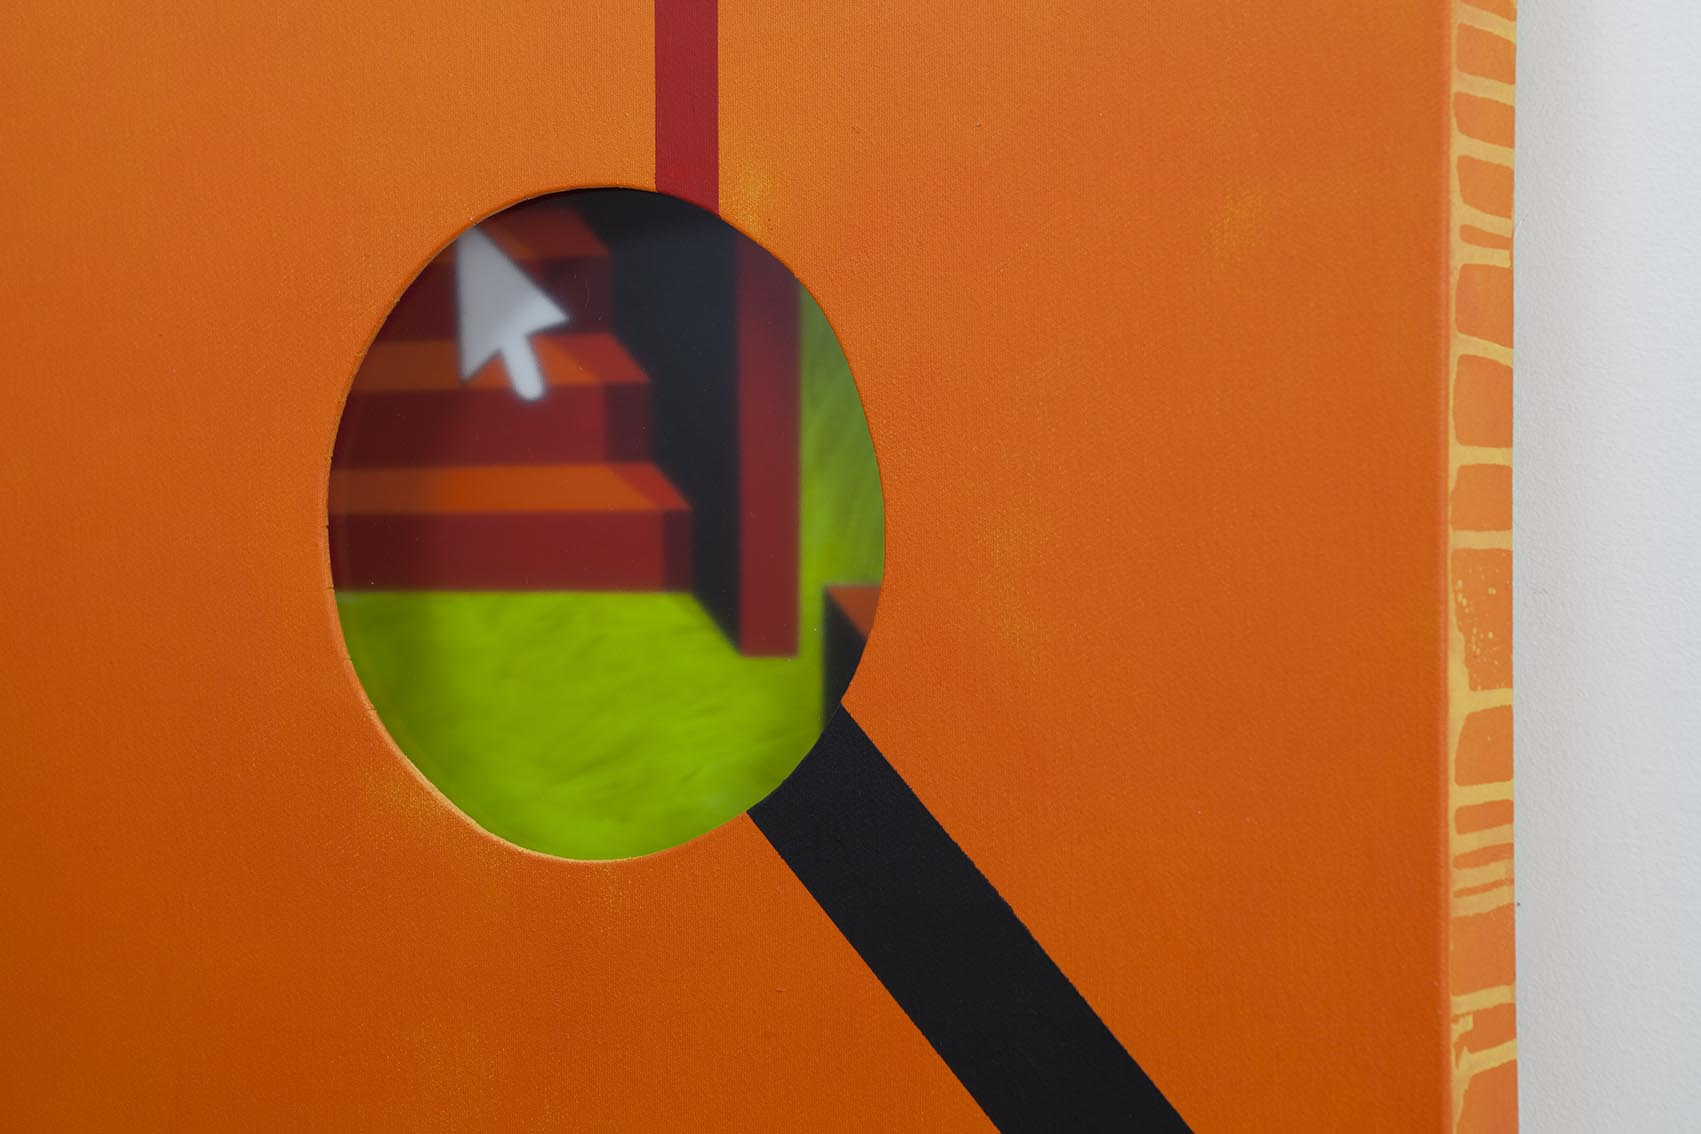 Hole in orange background / 2018 / Profile - HOME - Pere Galera. Paintings